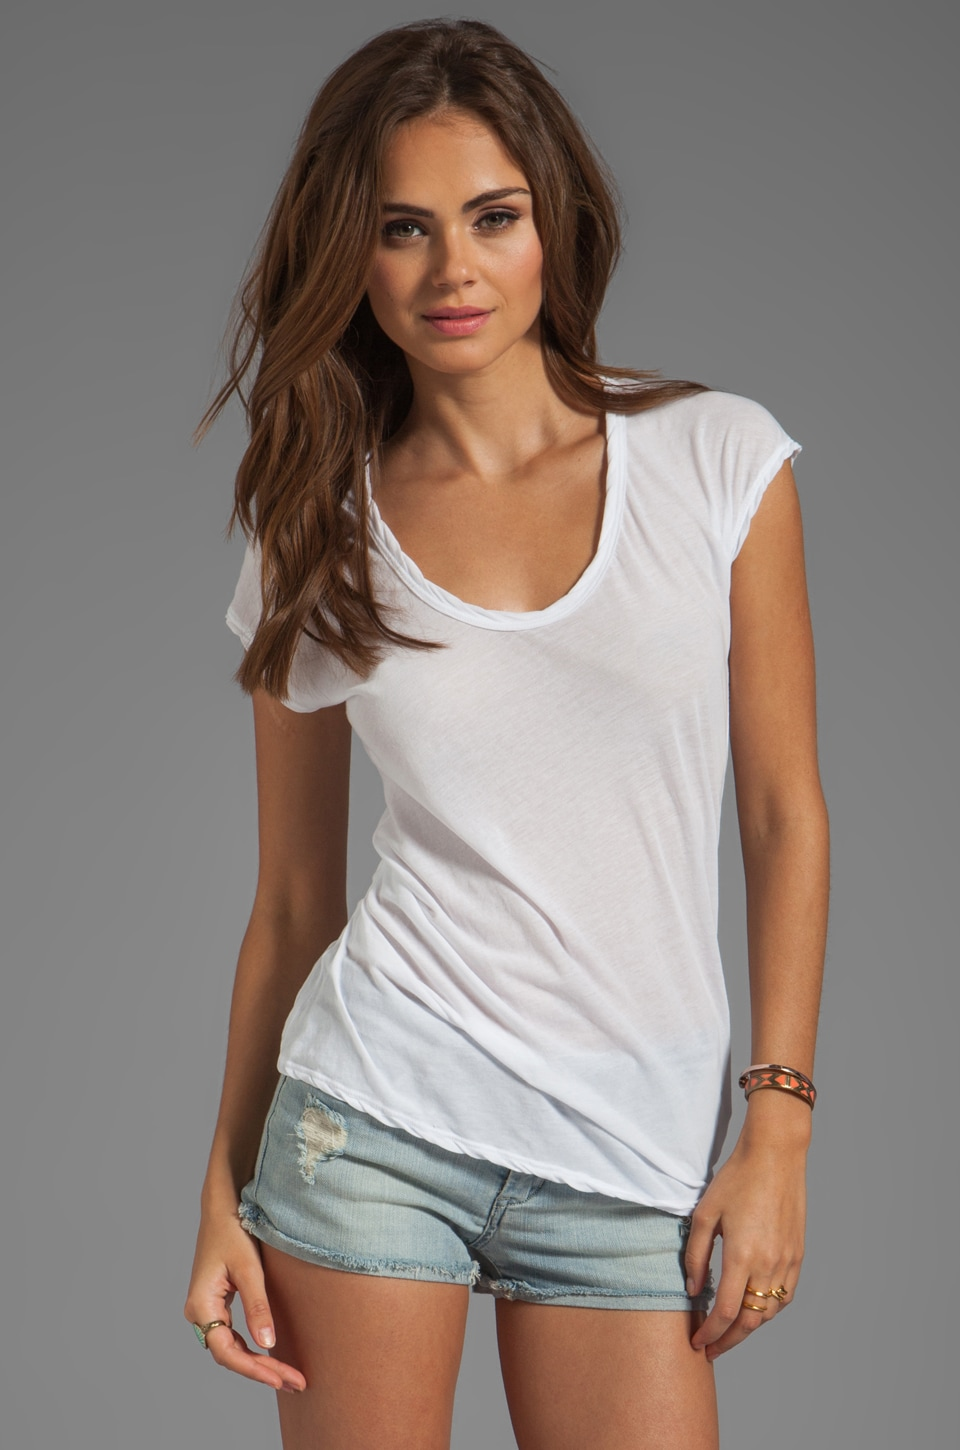 James Perse Asymmetrical Tuck Tee in White